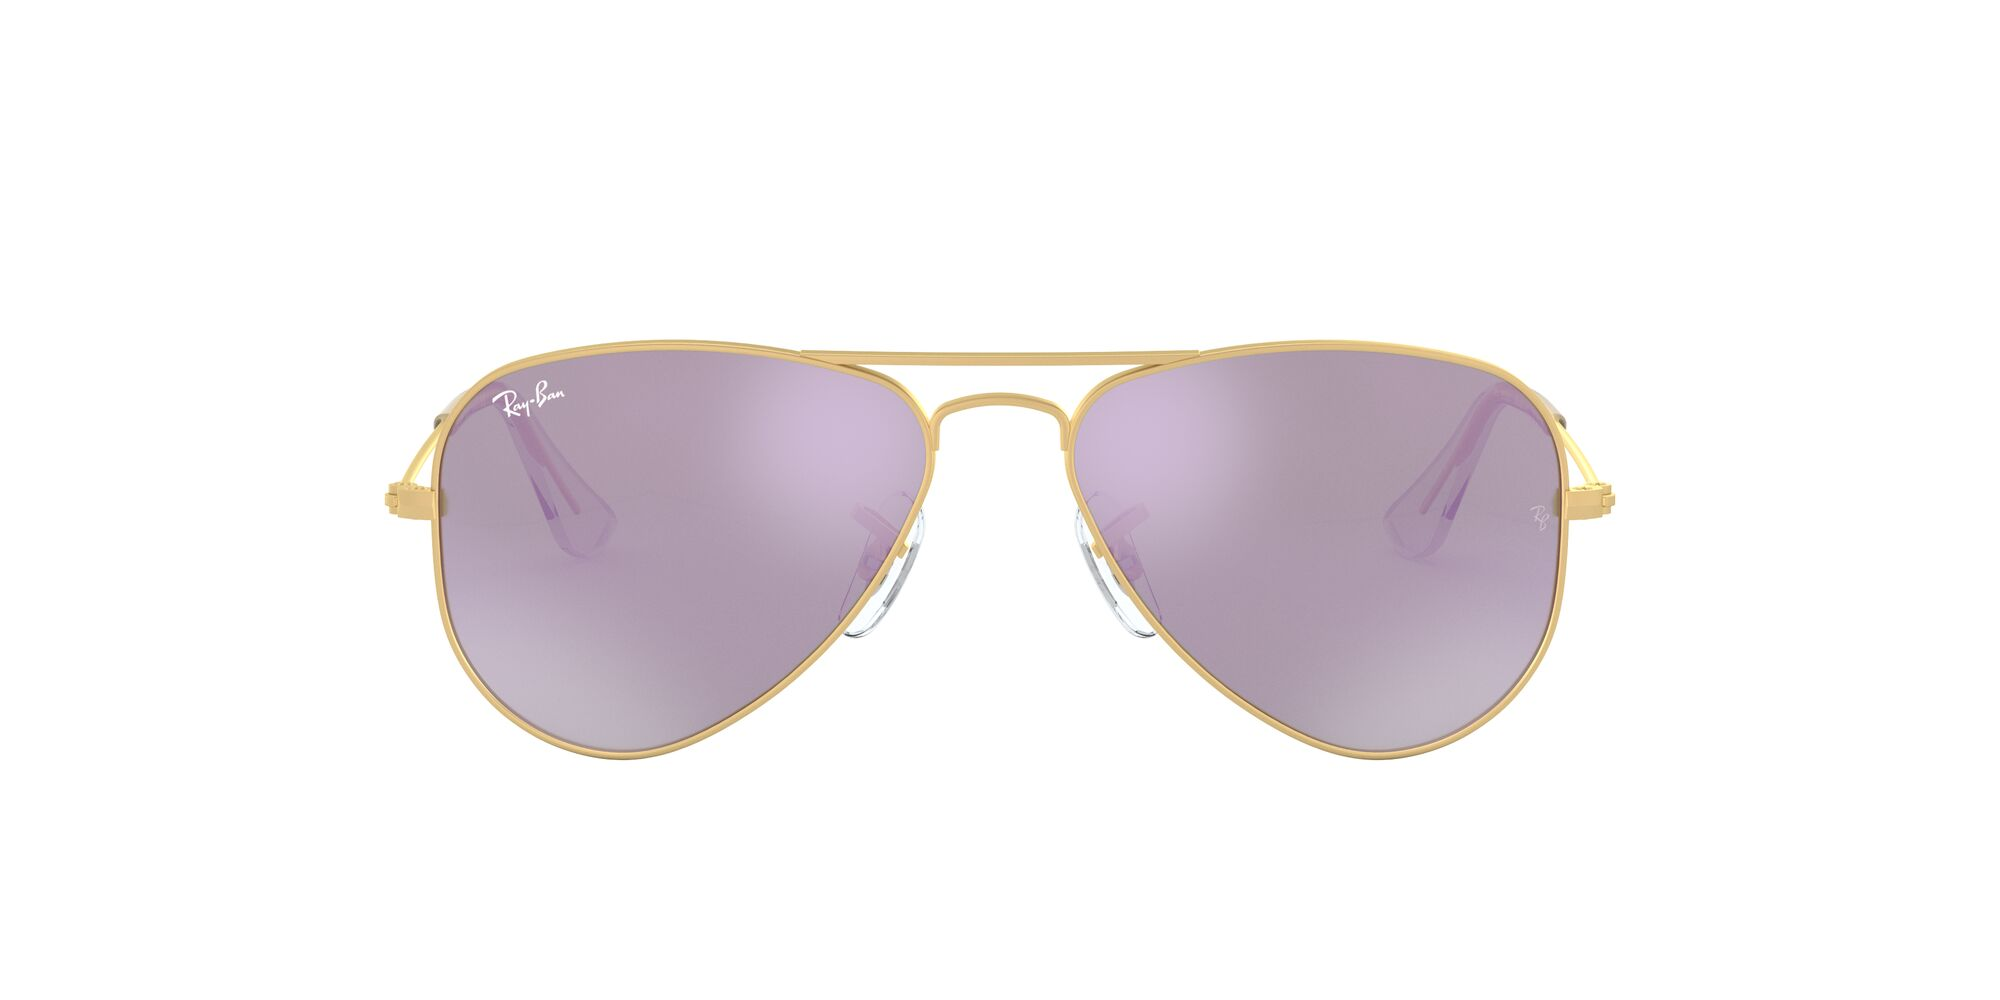 Front Ray-Ban Ray-Ban RB9506S 249 50/13 Goud/Paars